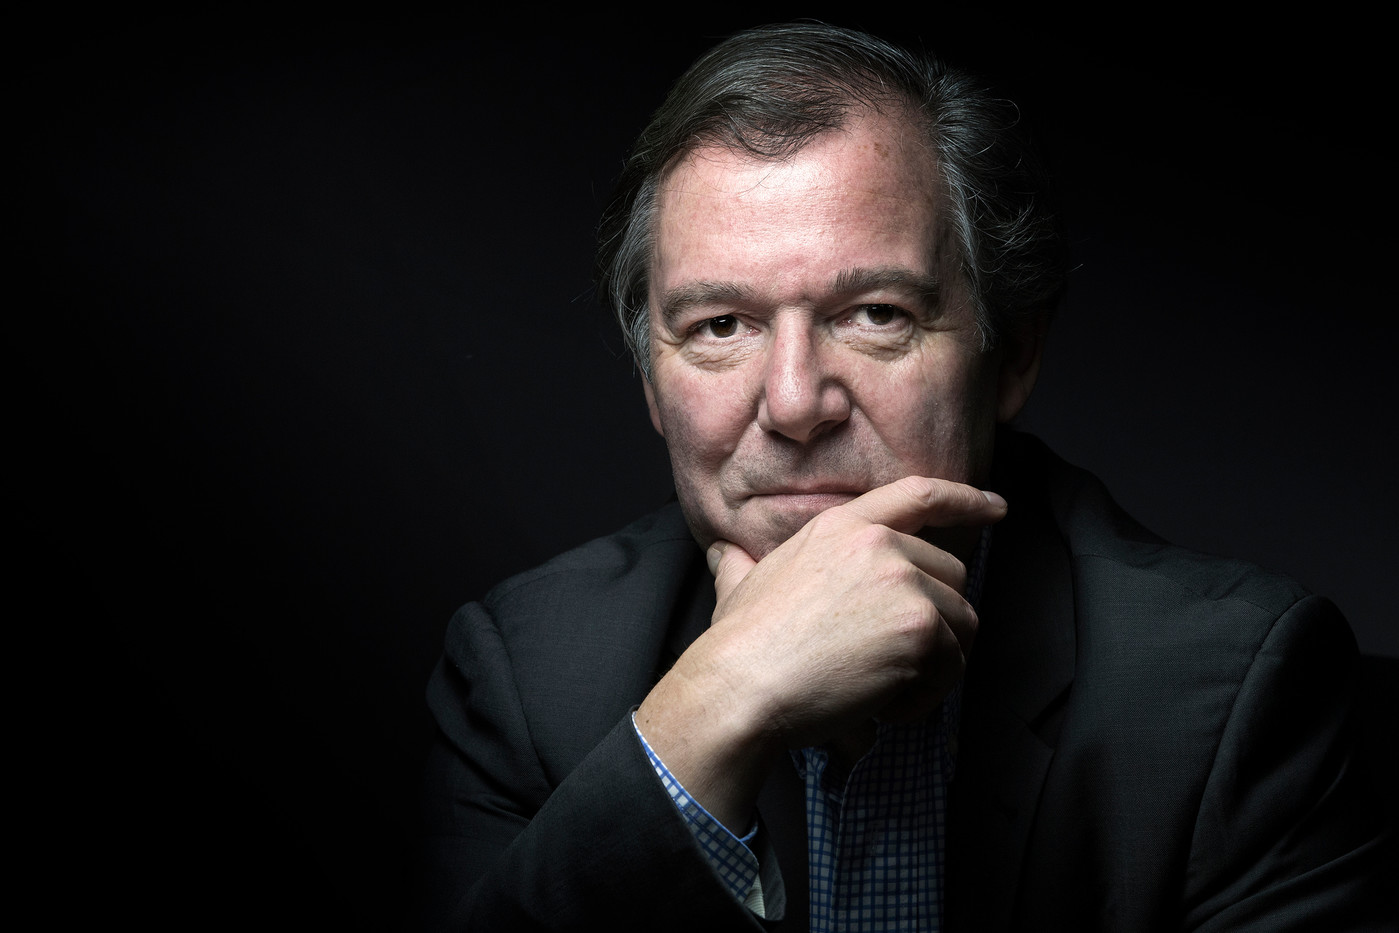 Jérôme Garcin. Photo : Joel Saget/AFP